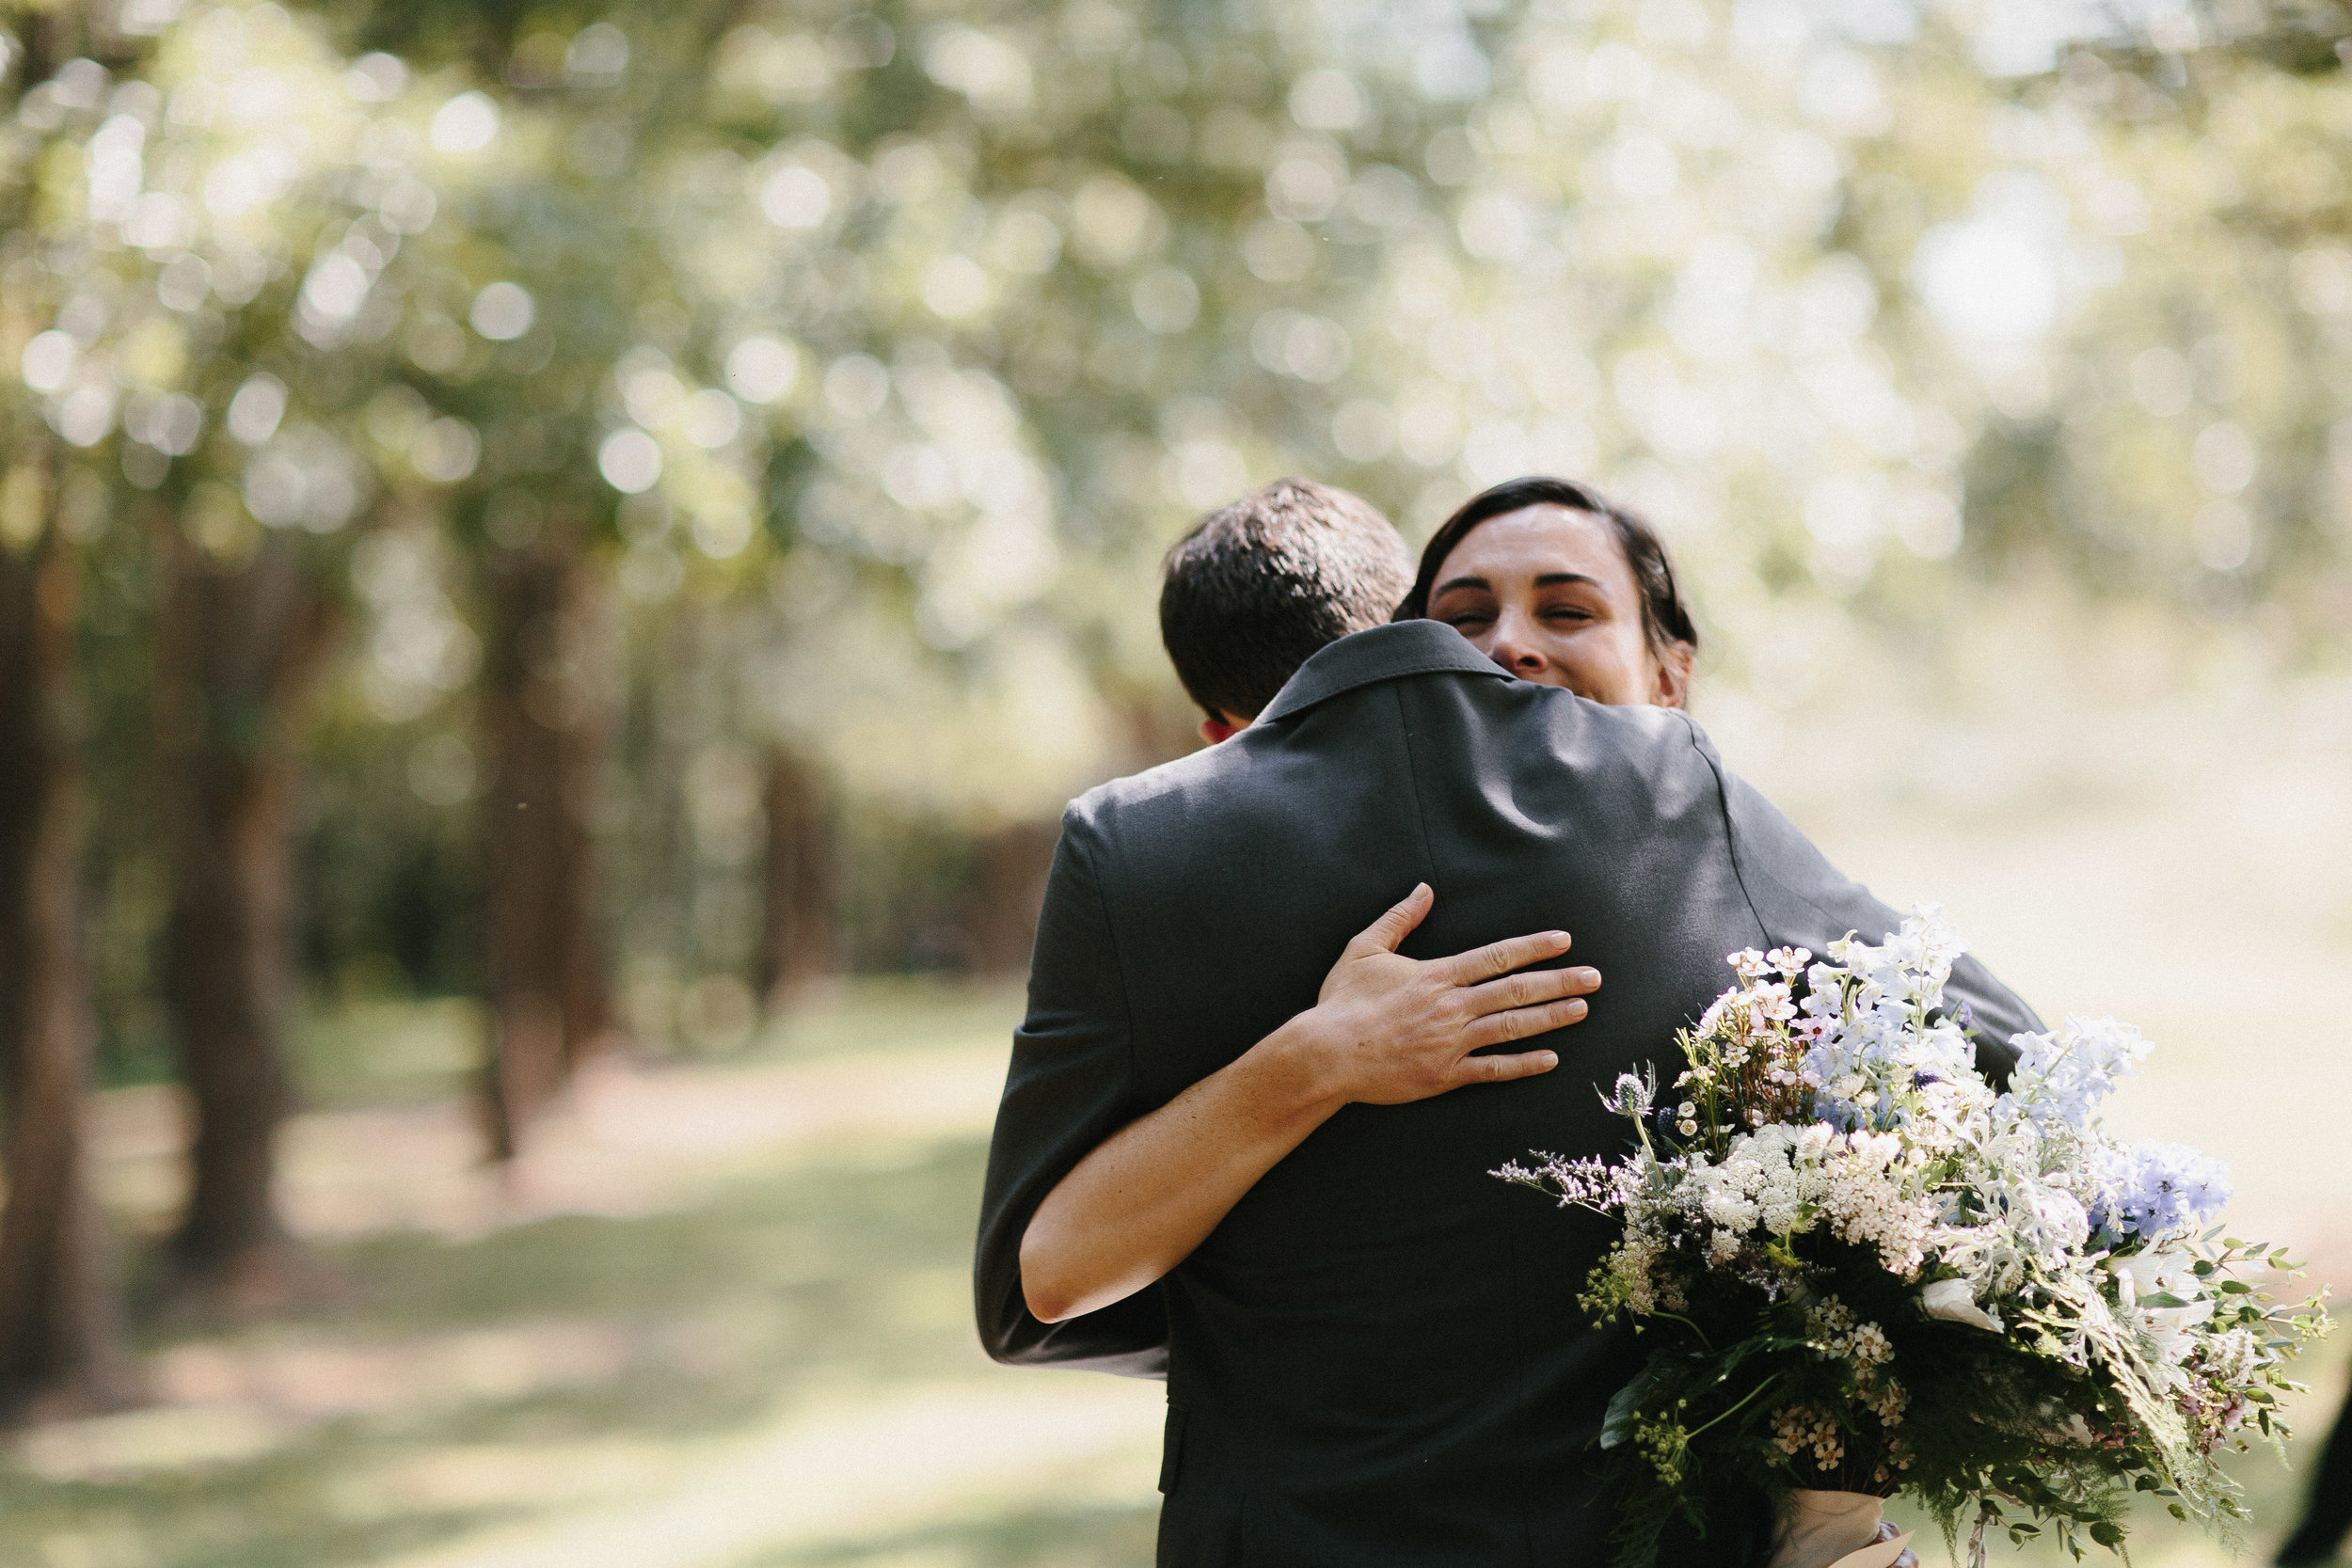 cleveland_georgia_mountain_laurel_farm_natural_classic_timeless_documentary_candid_wedding_emotional_photojournalism_river_west_1235.jpg